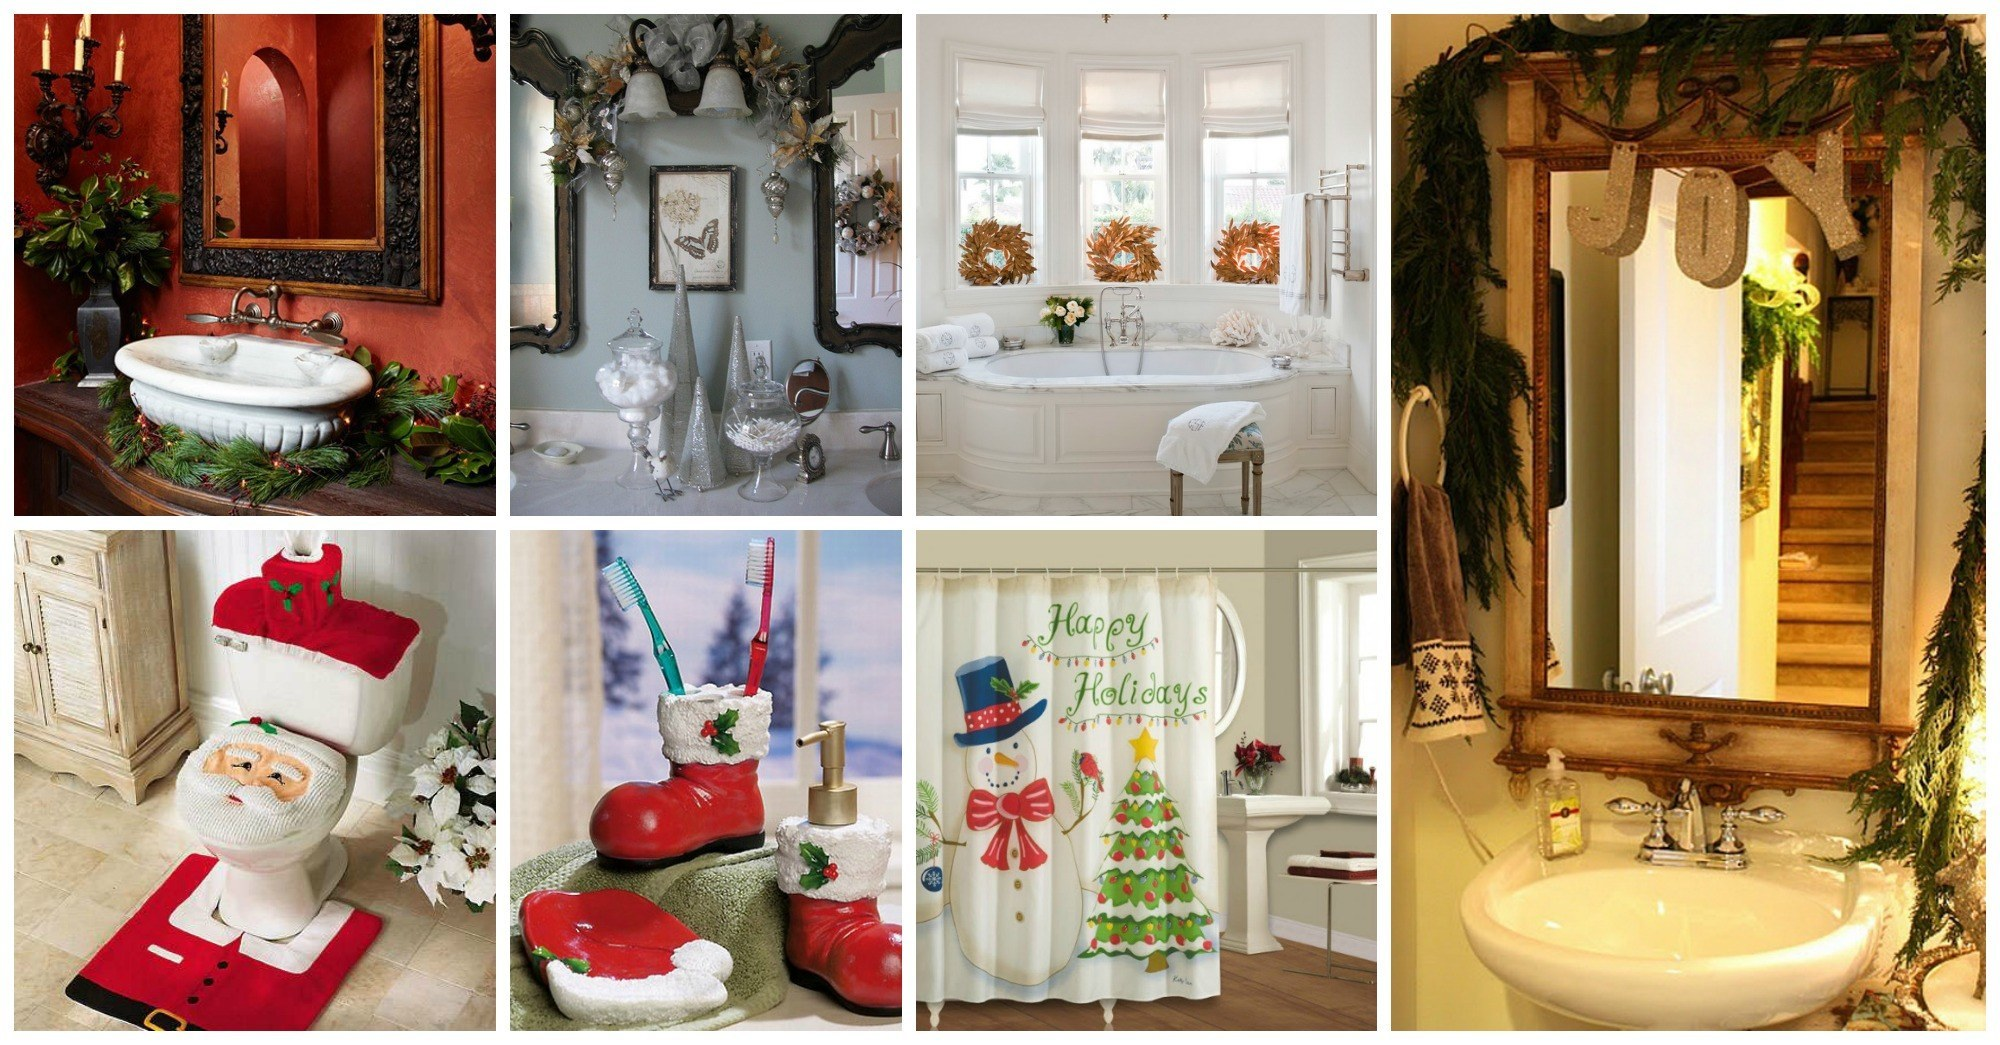 Cute Christmas Decorations for Your Bathroom